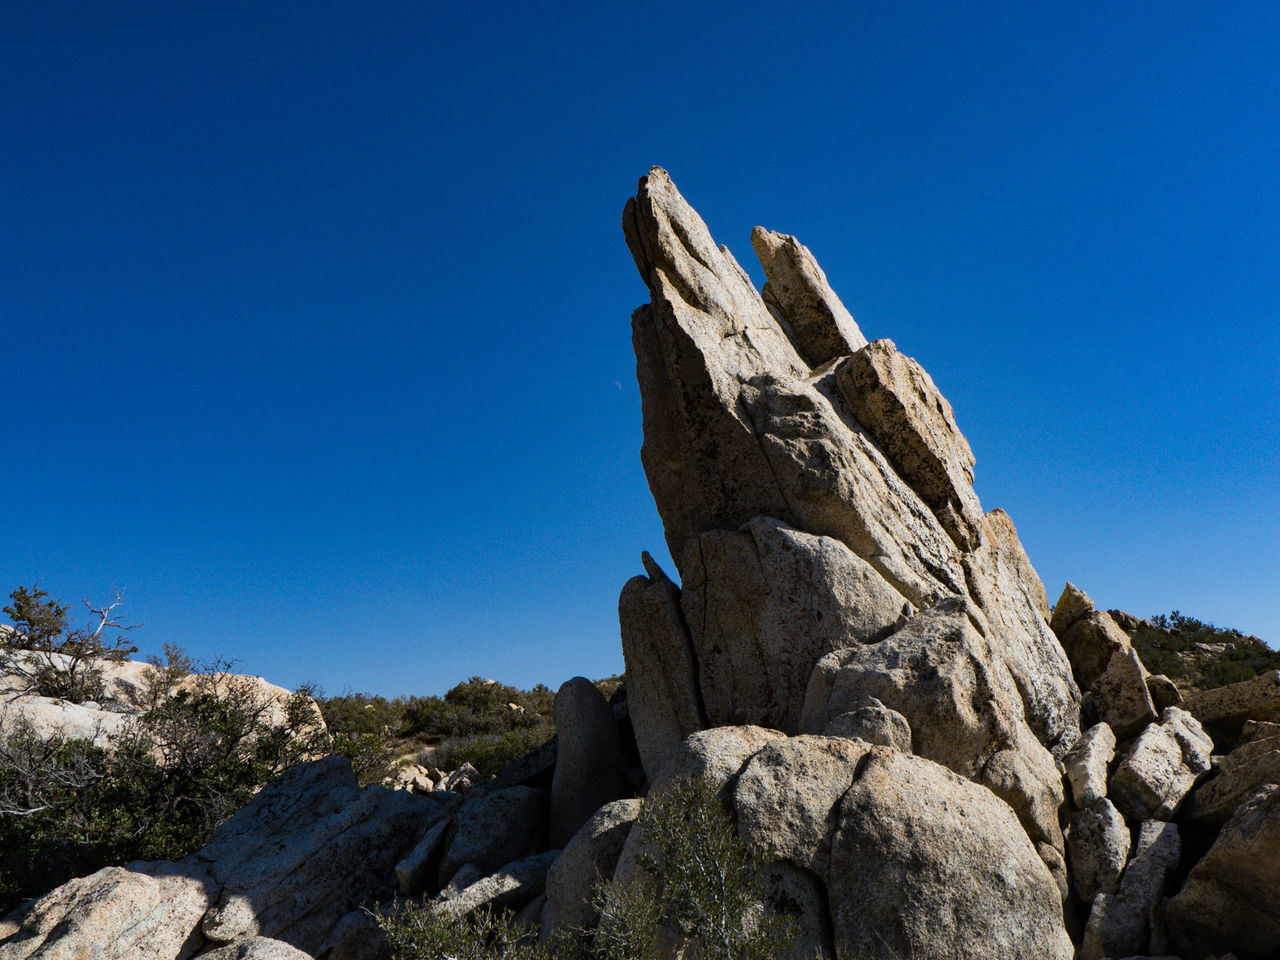 rock - object, blue, rock formation, clear sky, geology, copy space, nature, day, low angle view, outdoors, no people, physical geography, cliff, sunlight, tranquility, beauty in nature, scenics, sky